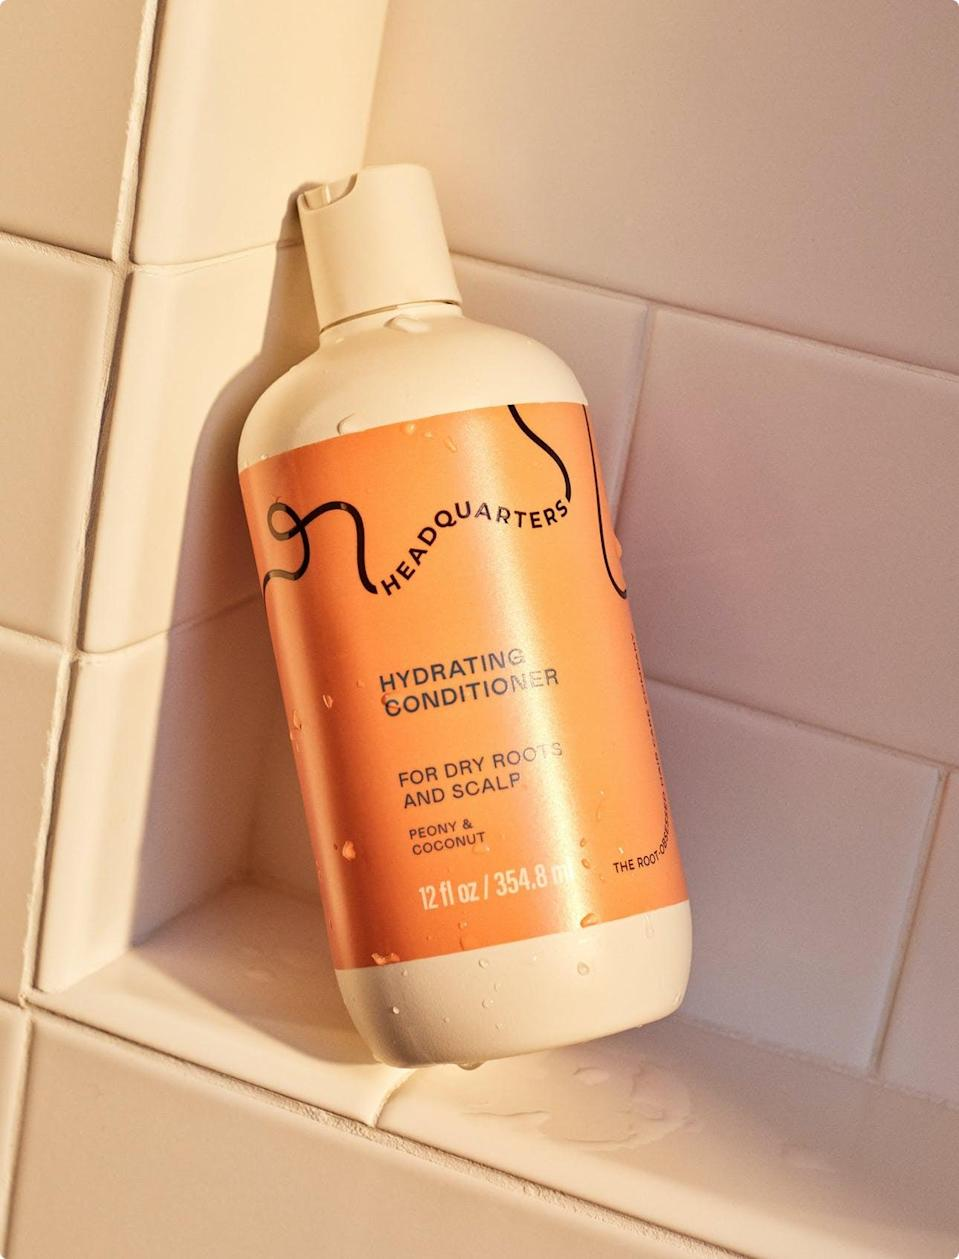 <p>I follow the shampoo with this <span>Headquarters Hydrating Conditioner - Dry</span> ($8), which is super thick and nourishing. I don't generally use conditioner on my roots, just my ends, but it still makes my hair look and feel so healthy.</p>